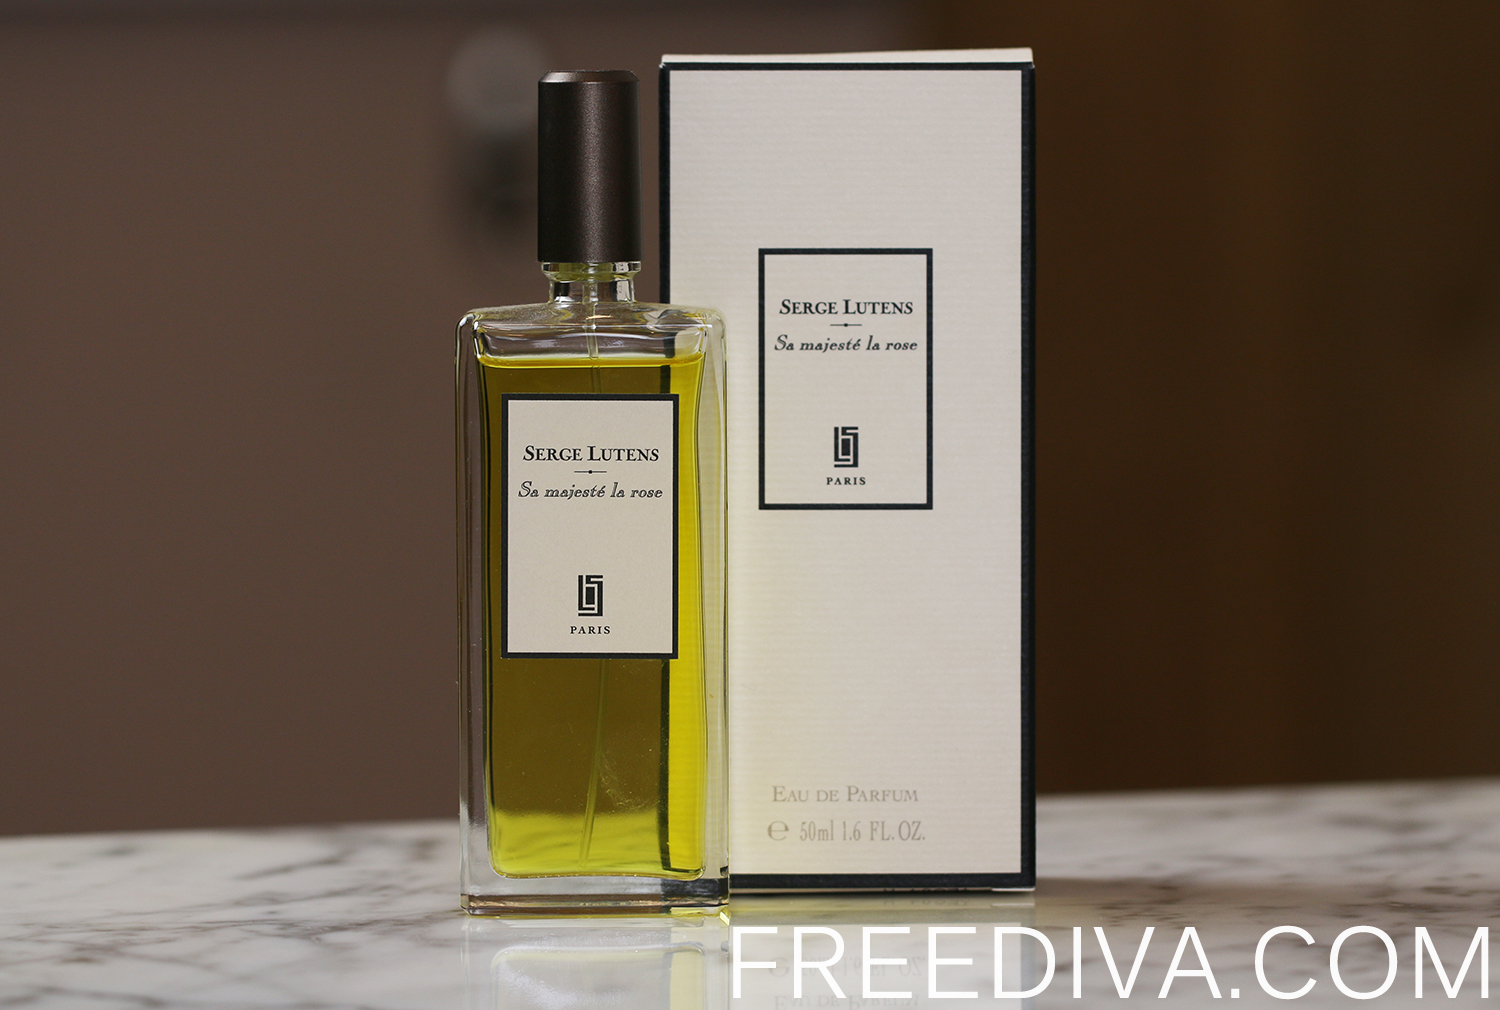 sa majeste la rose eau de parfum serge lutens free diva. Black Bedroom Furniture Sets. Home Design Ideas